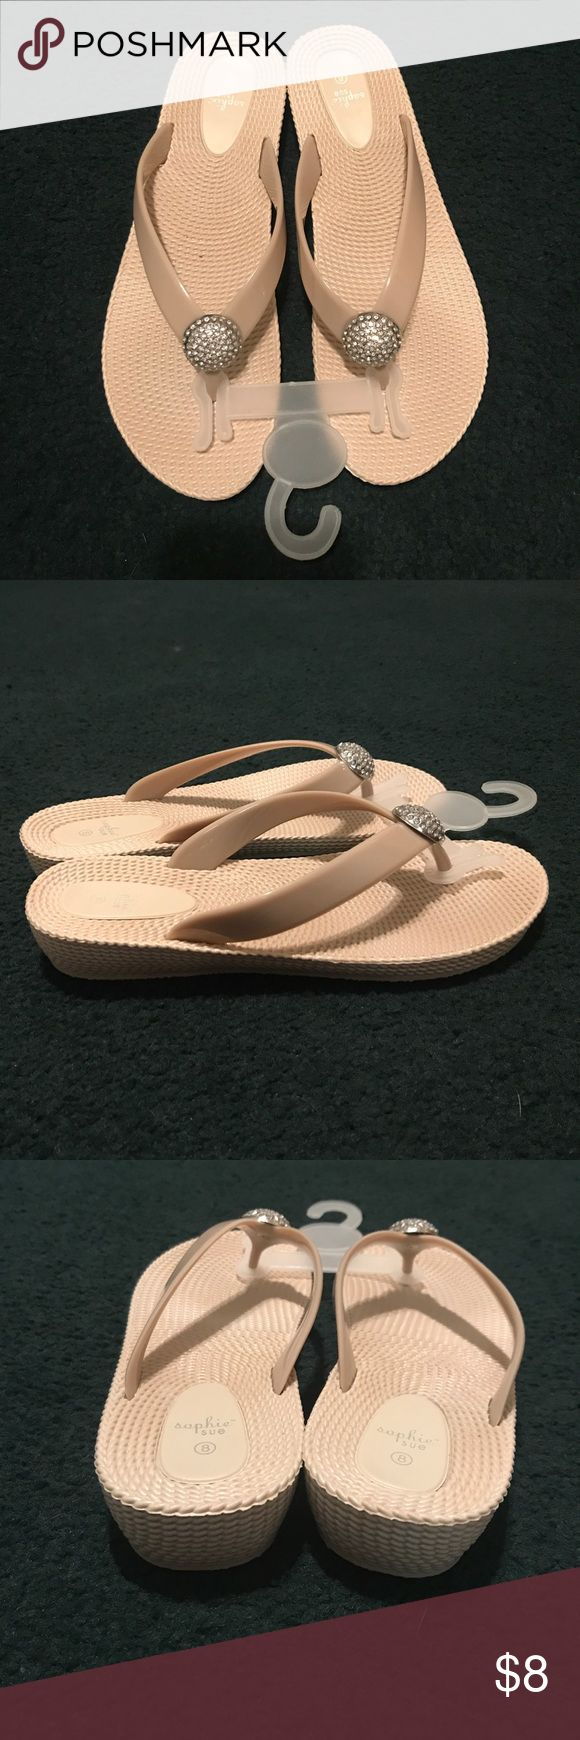 New wedge flip flops size 8 New wedge flip flops size 8. Wedge is 1 1/4 inch high. Jewel detail on front. Shoes Sandals